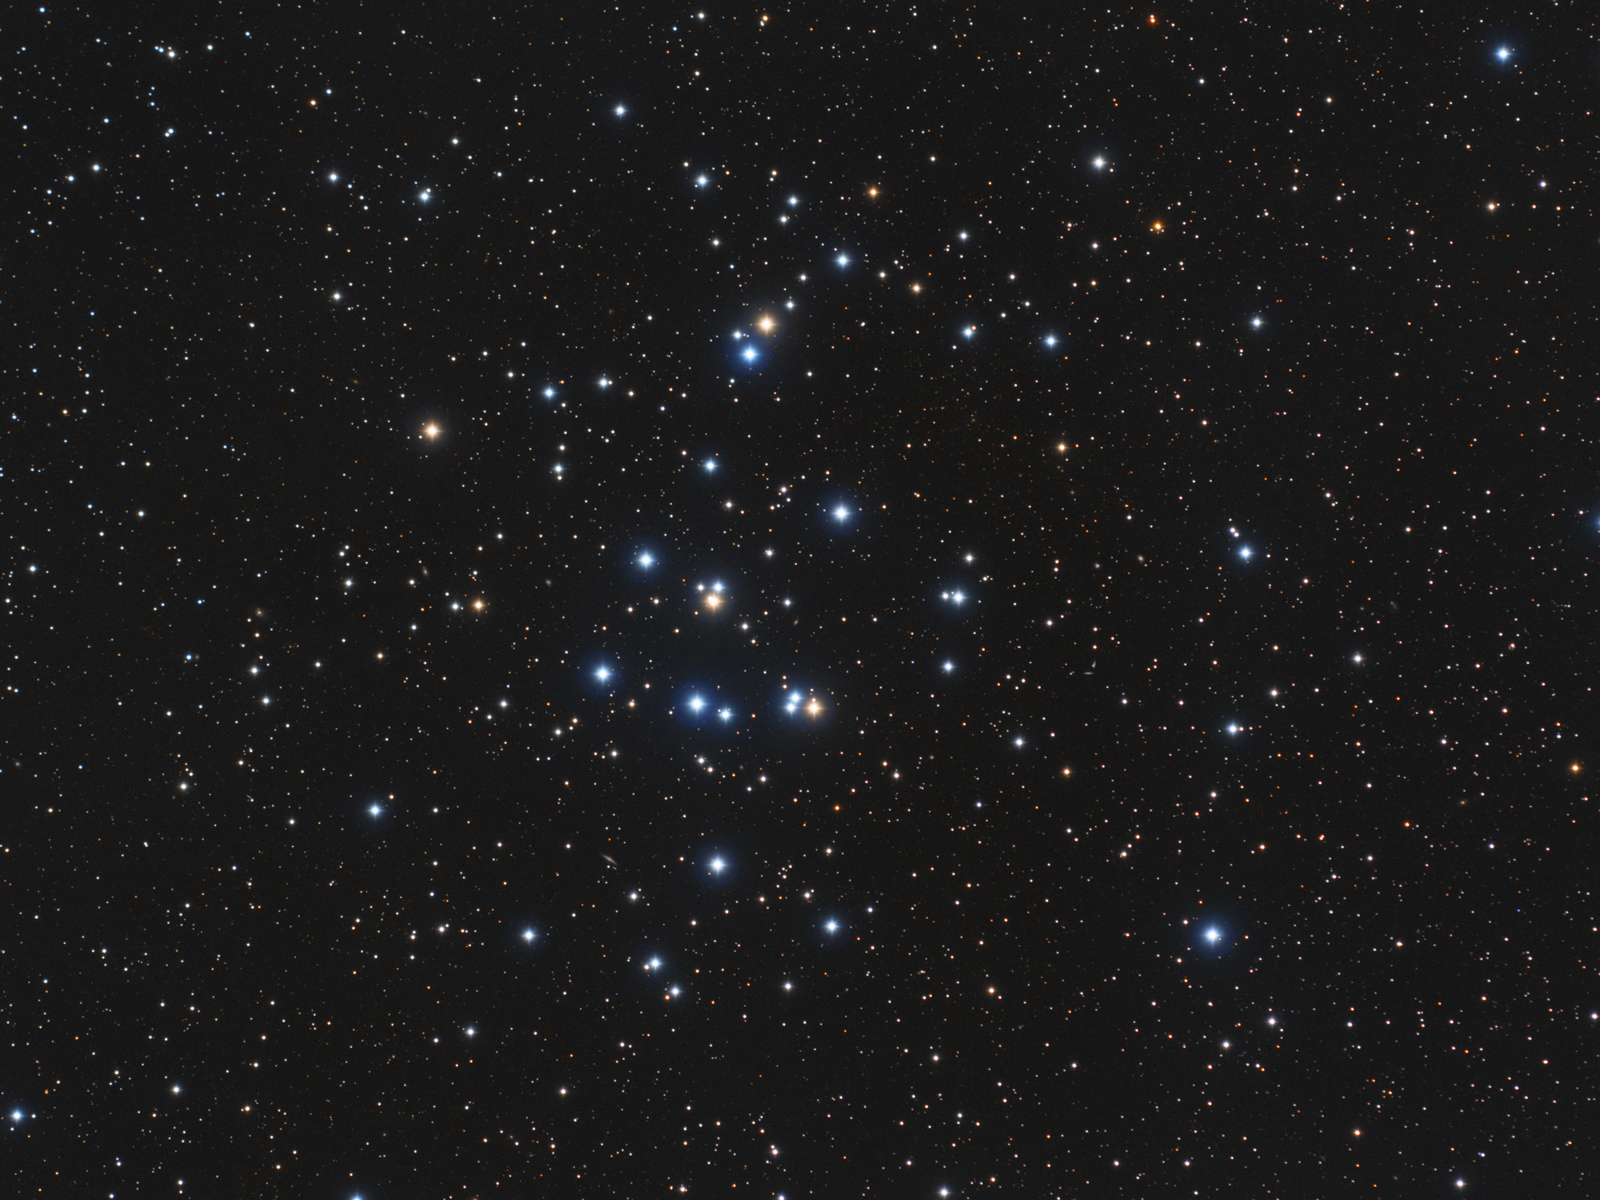 Image of the Beehive Cluster